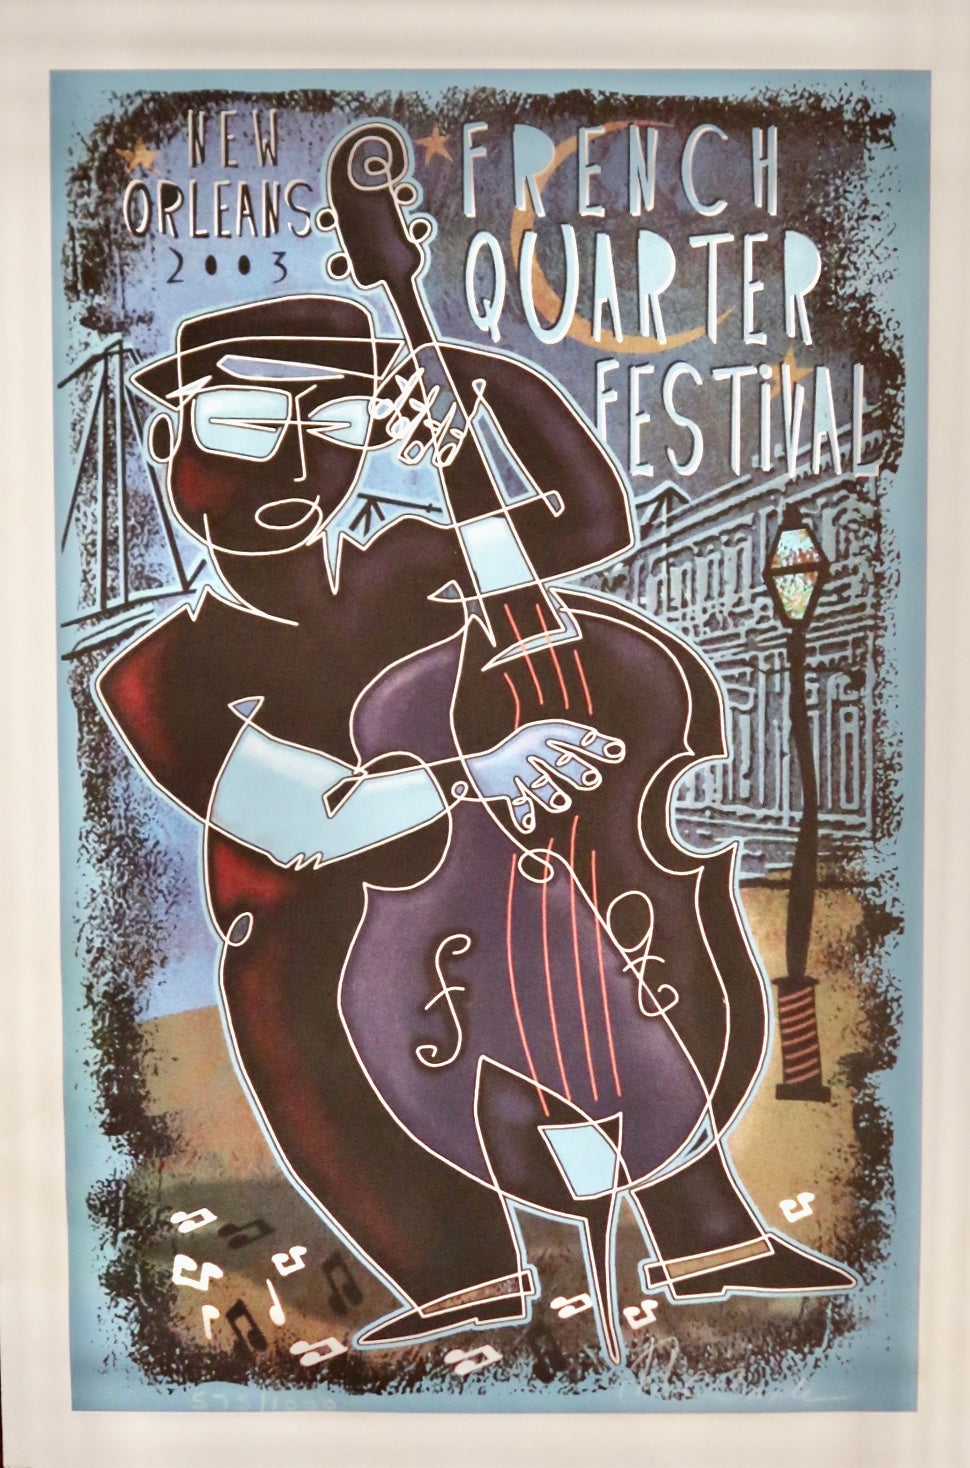 2003 French Quarter Festival Poster